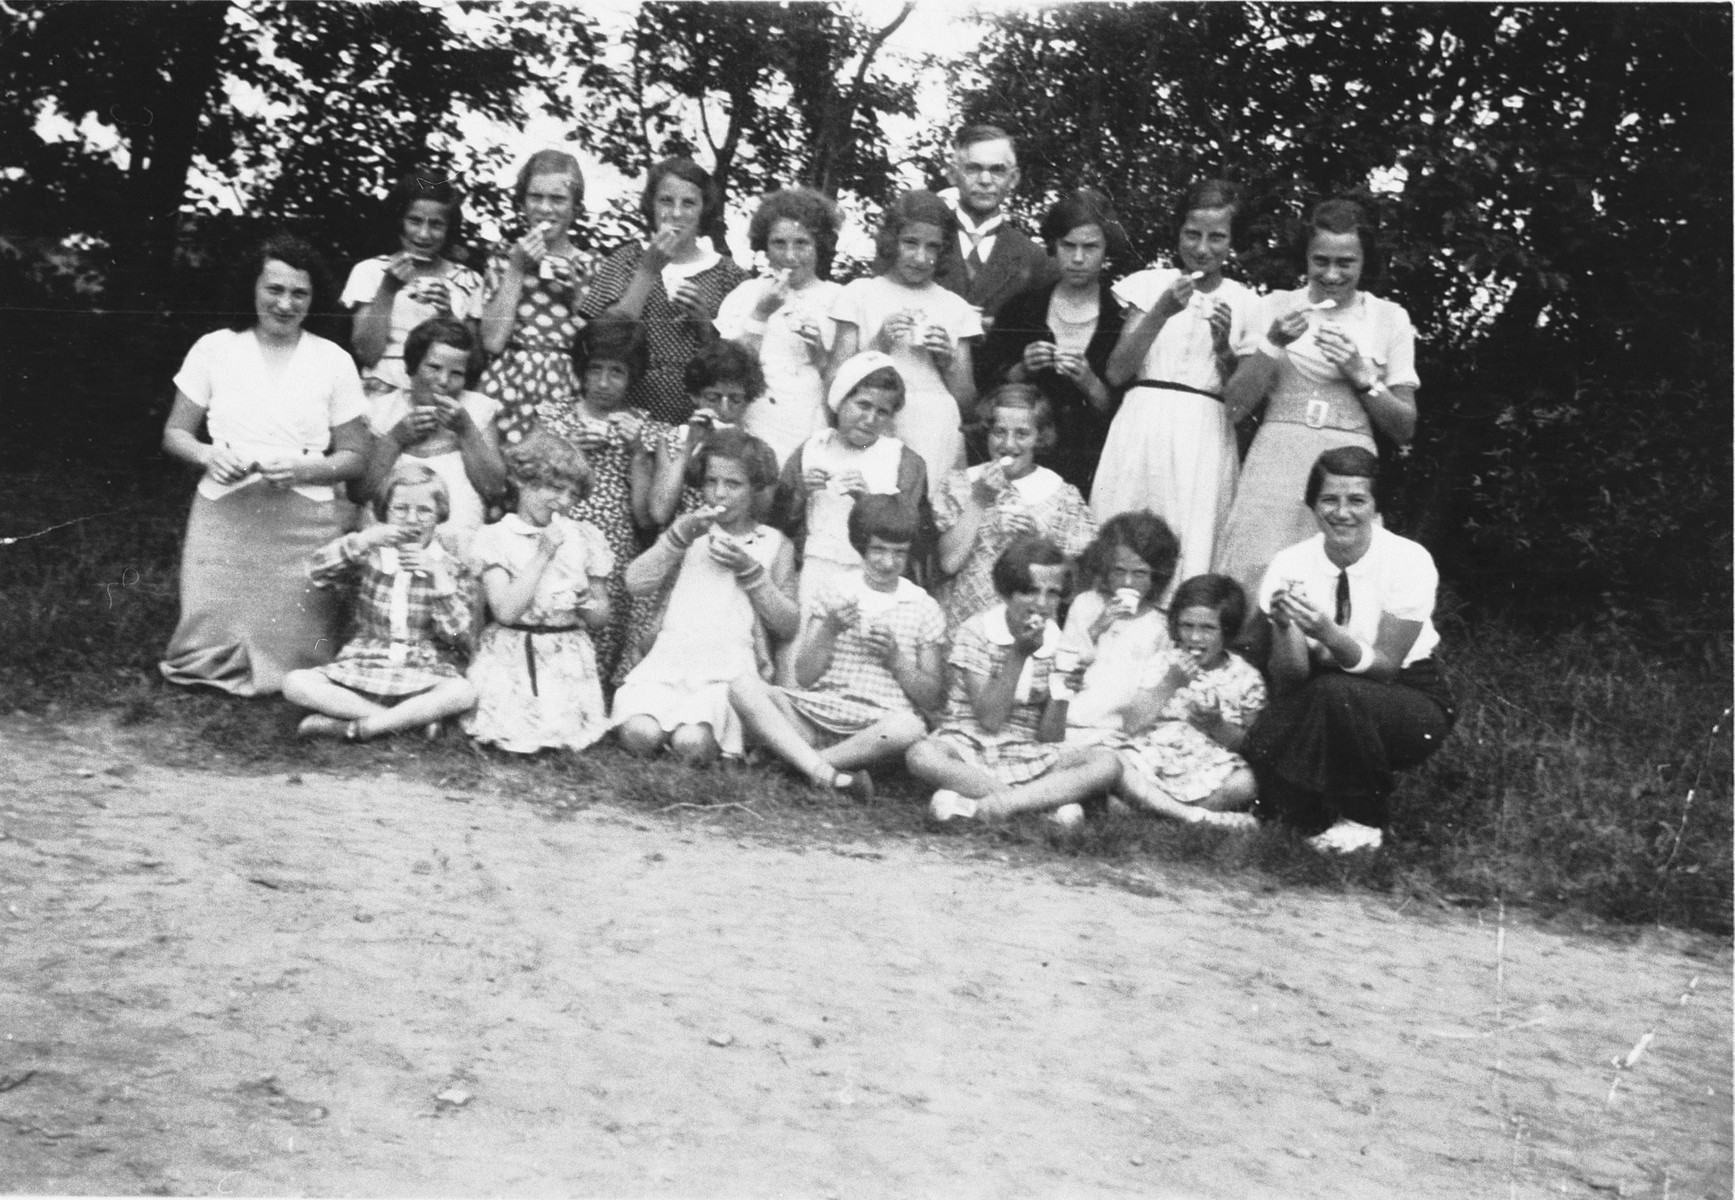 Group portrait of campers and counselors at a Jewish summer camp in Skibstrup, Denmark.  The camp was affiliated with the Karolinenskolen, a Jewish day school in Copenhagen.  Among those pictured is Kaja Diament (front, right), who was a counselor at the camp.